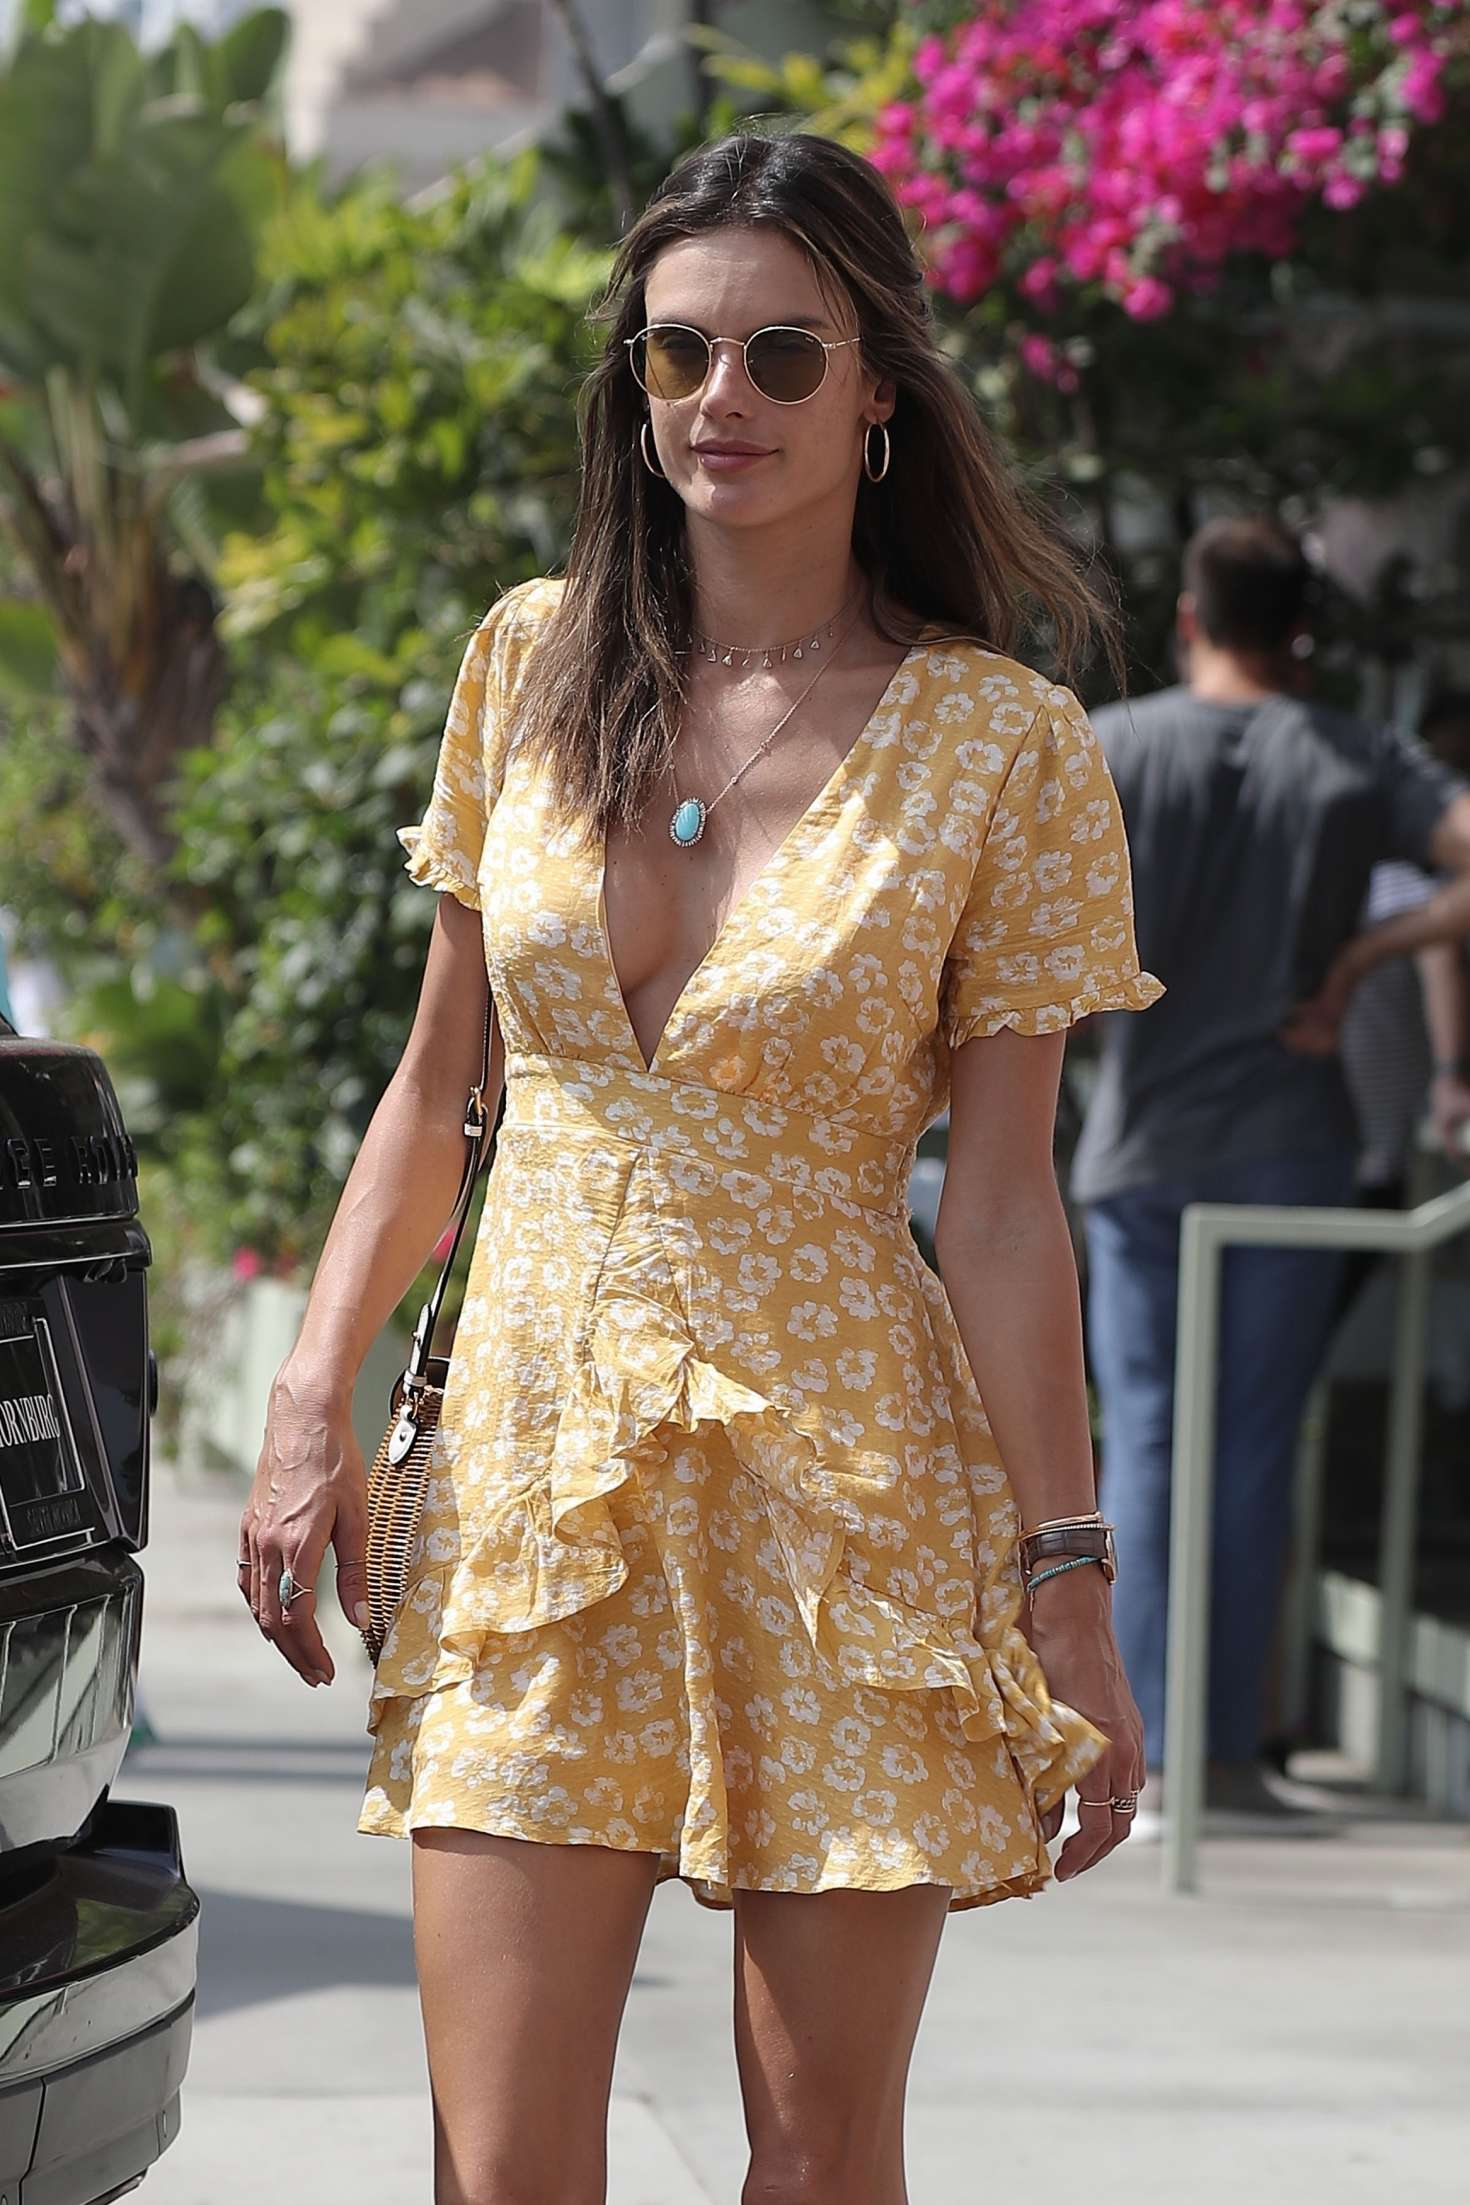 Alessandra Ambrosio in Yellow Mini Dress – Arrives at Ivy in Santa Monica